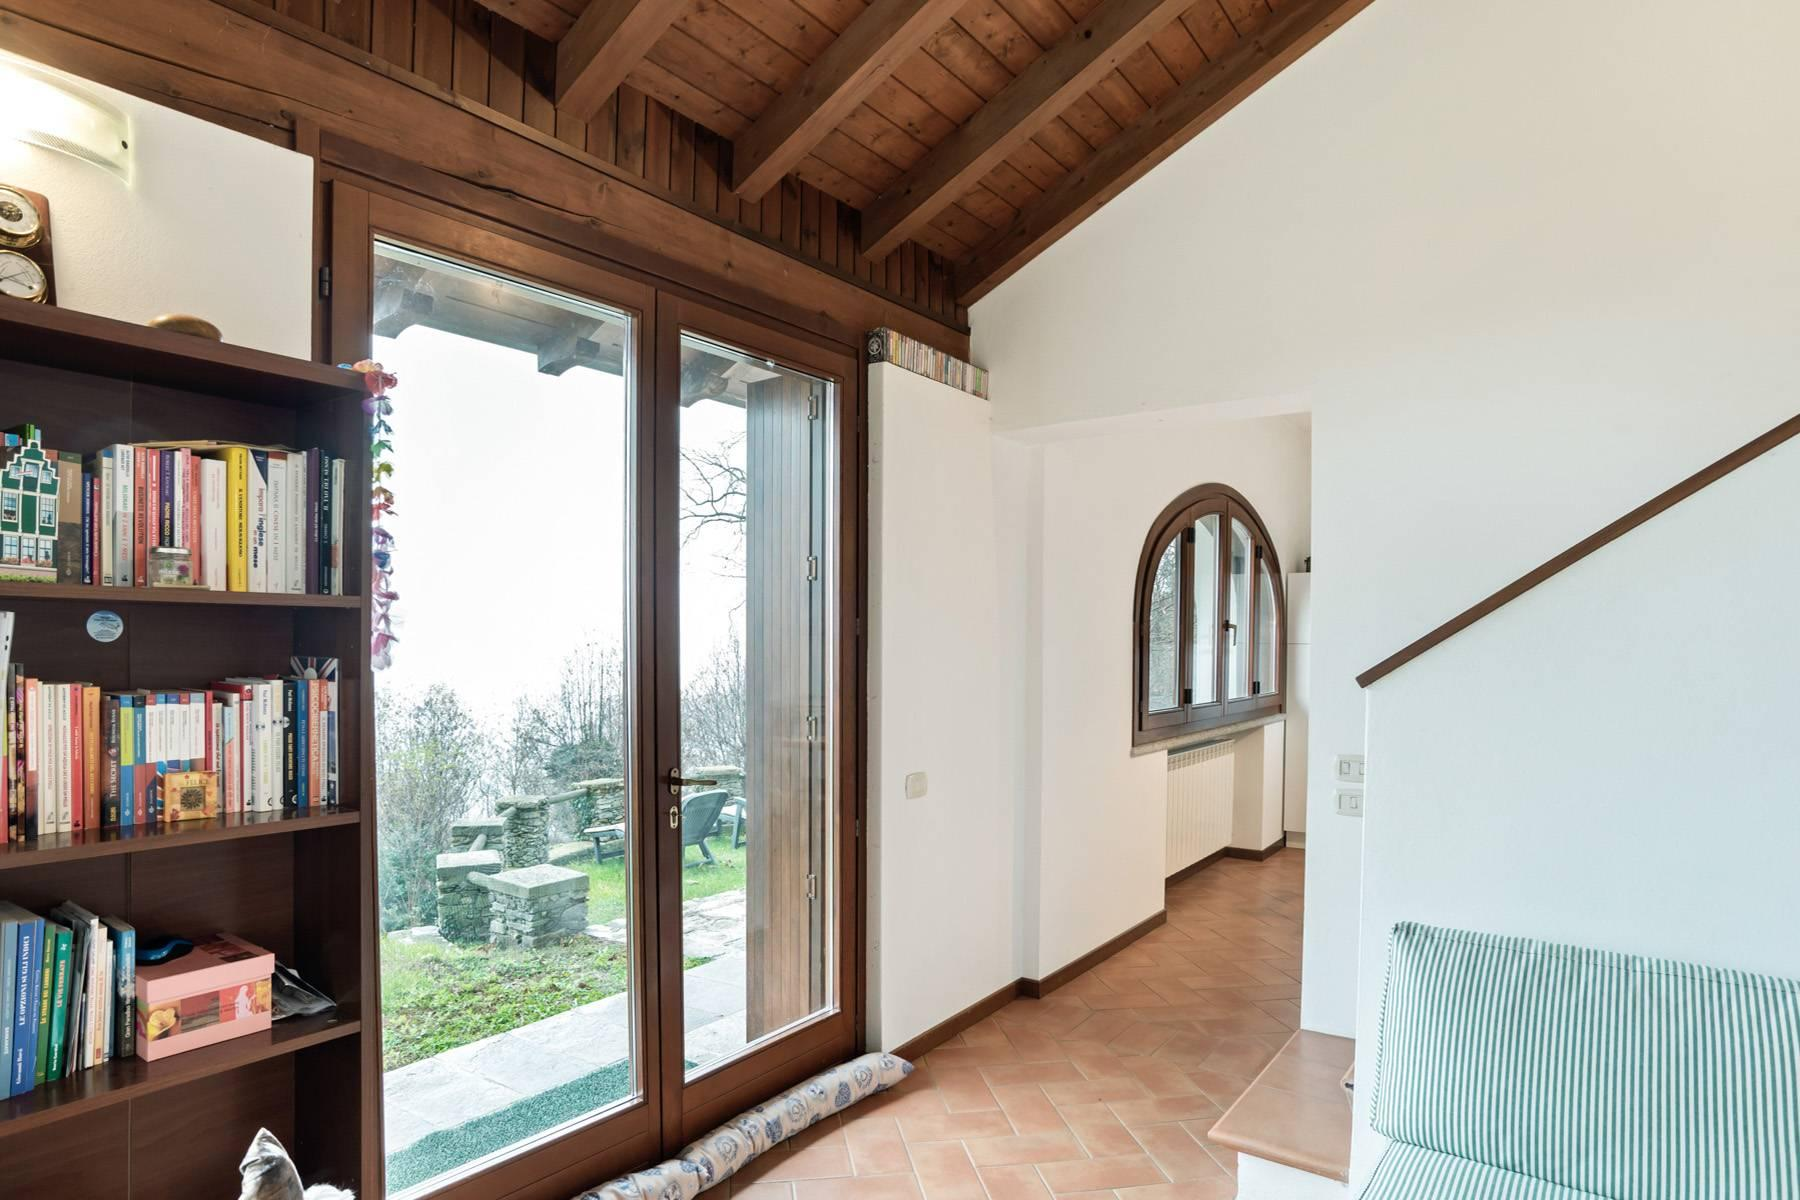 Among the hills of Massino Visconti, Villa surrounded by greenery - 5